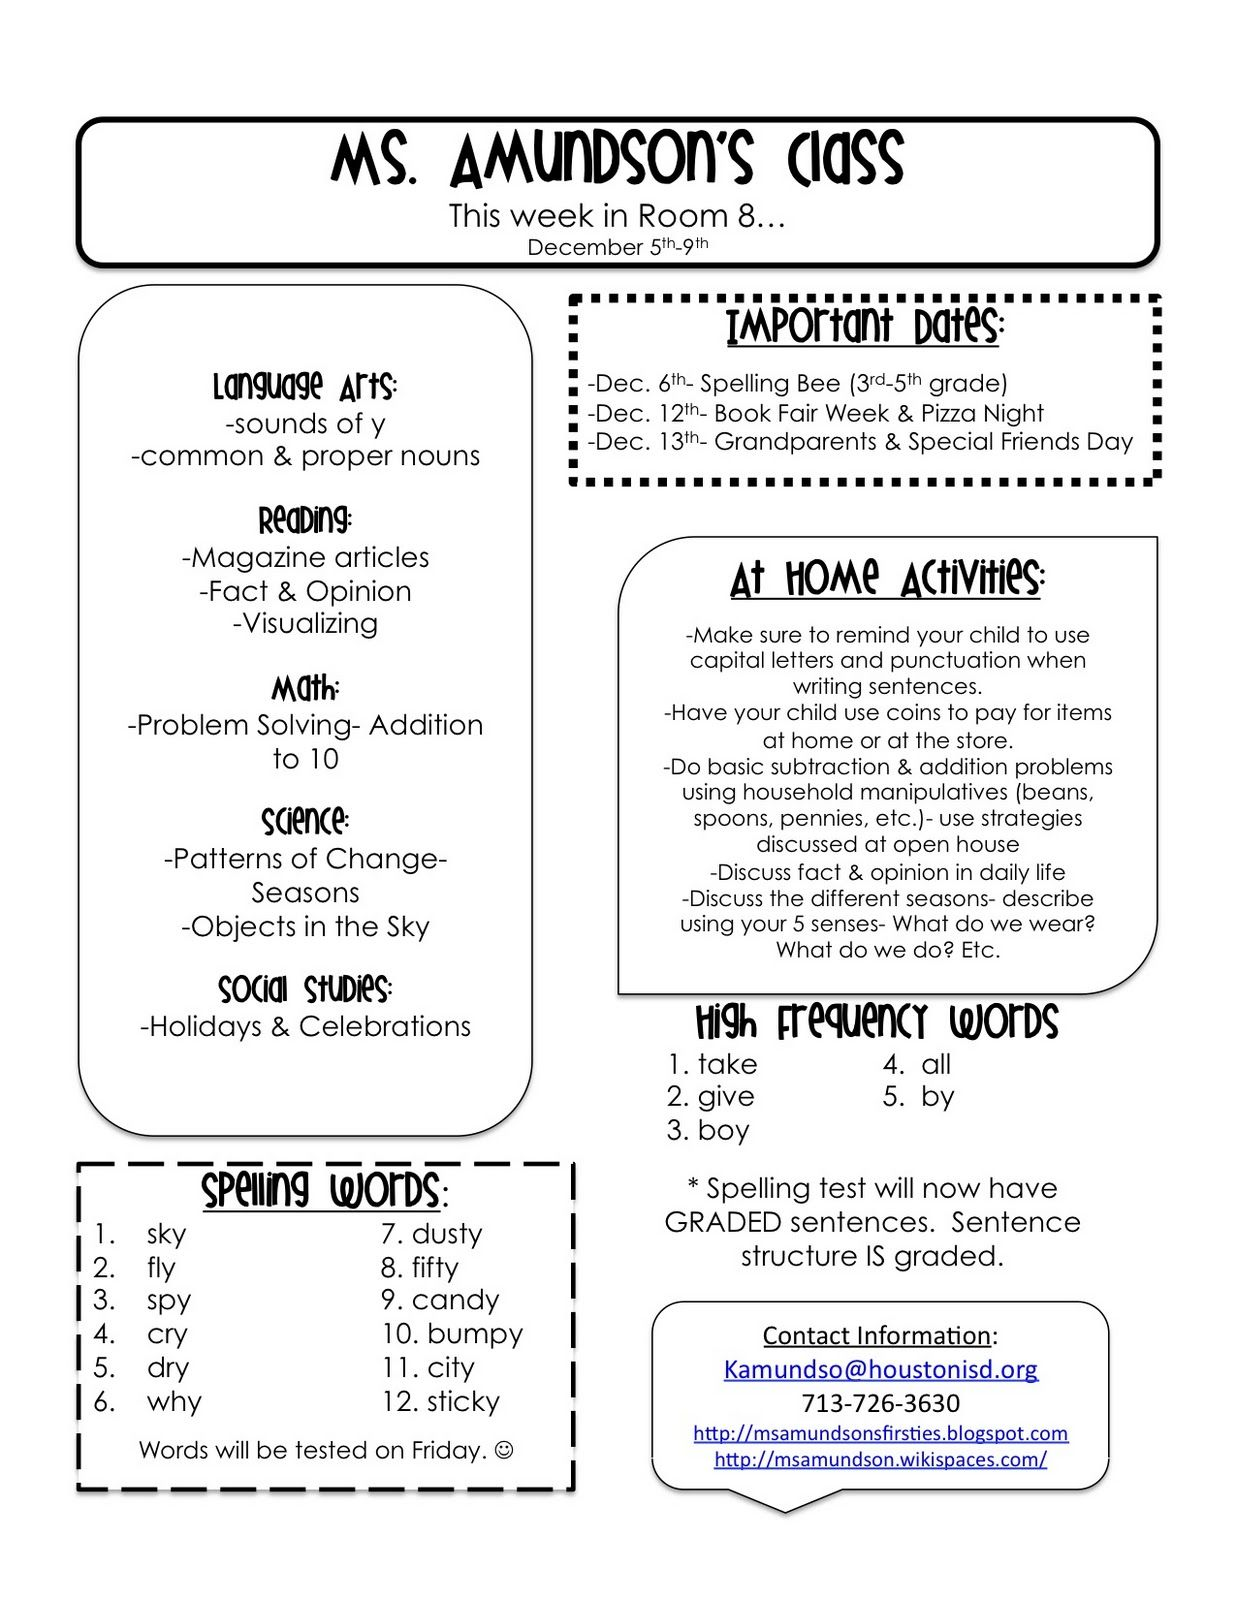 Weekly Newsletter Templates For Teachers | First Grade | Pinterest ...